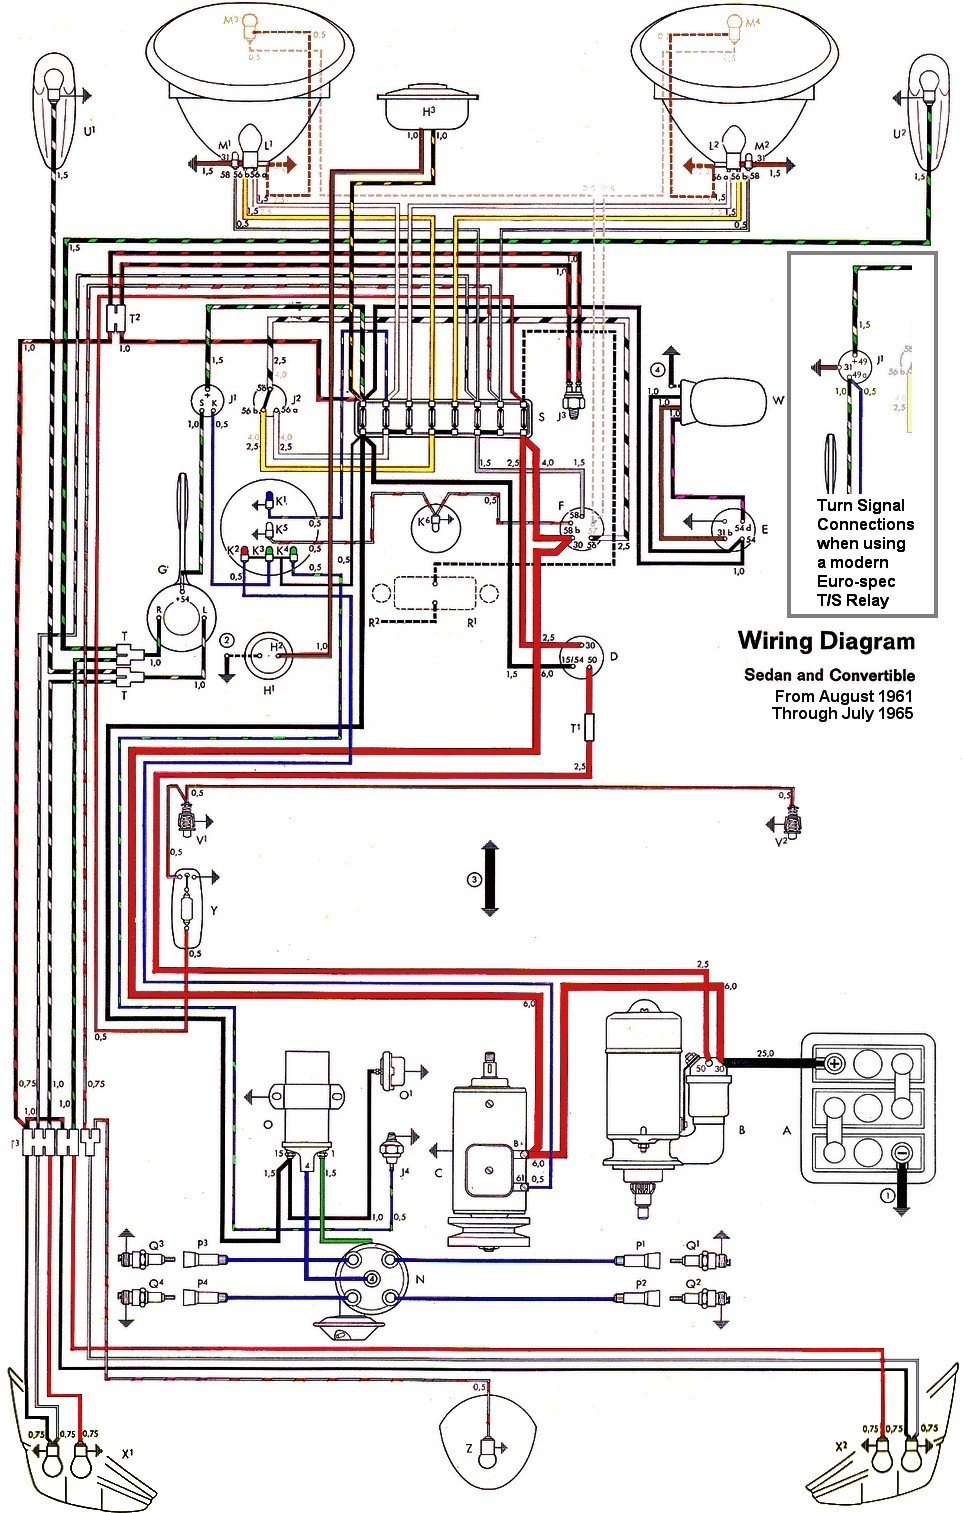 bug_62 65withinset thesamba com type 1 wiring diagrams 1971 vw beetle wiring diagram at aneh.co